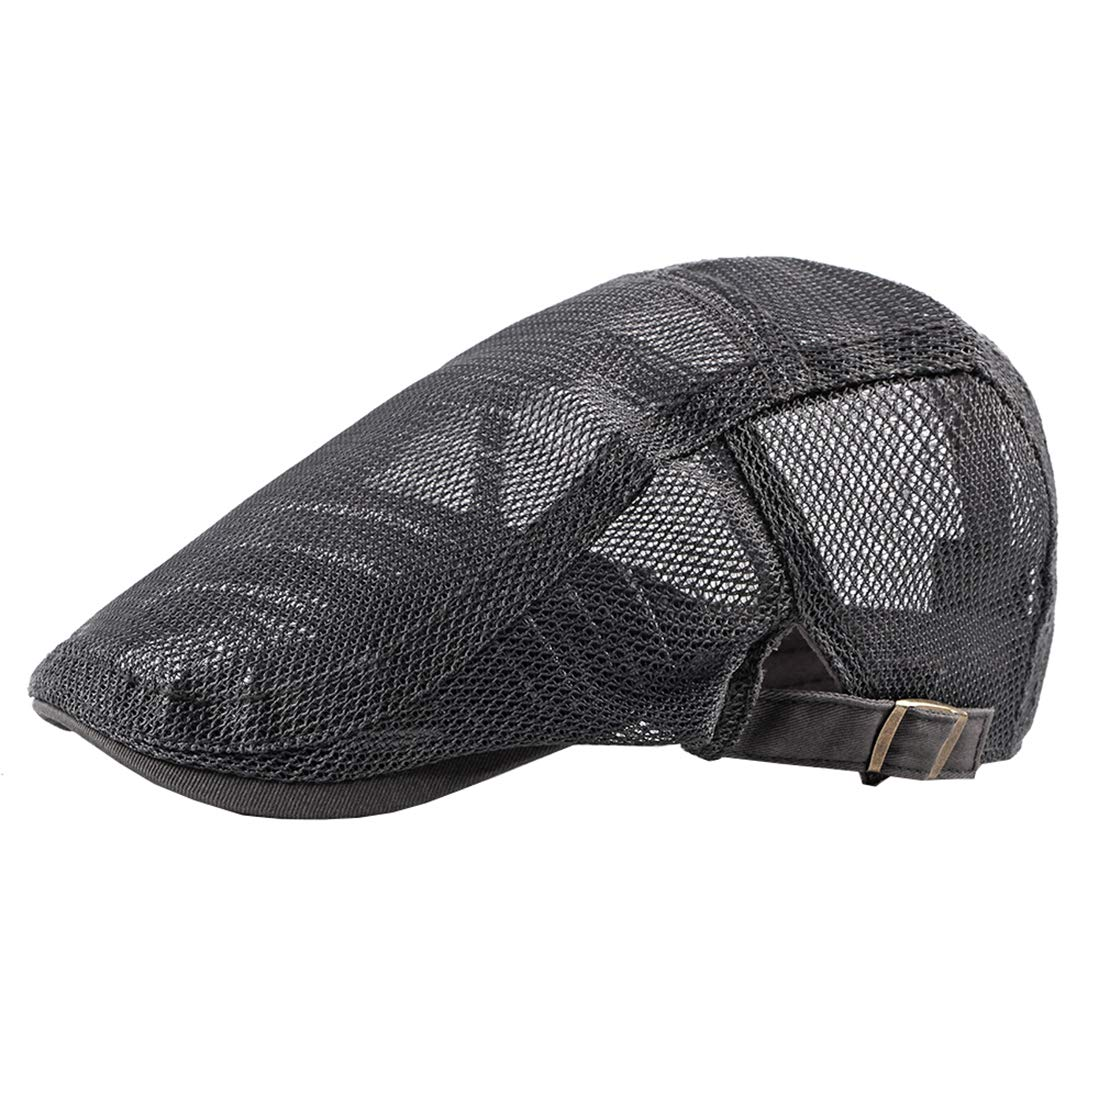 Pogah Solid Mesh-Newsboy Flat Cap Hollow Breathable Ivy Cabbie Hat Summer